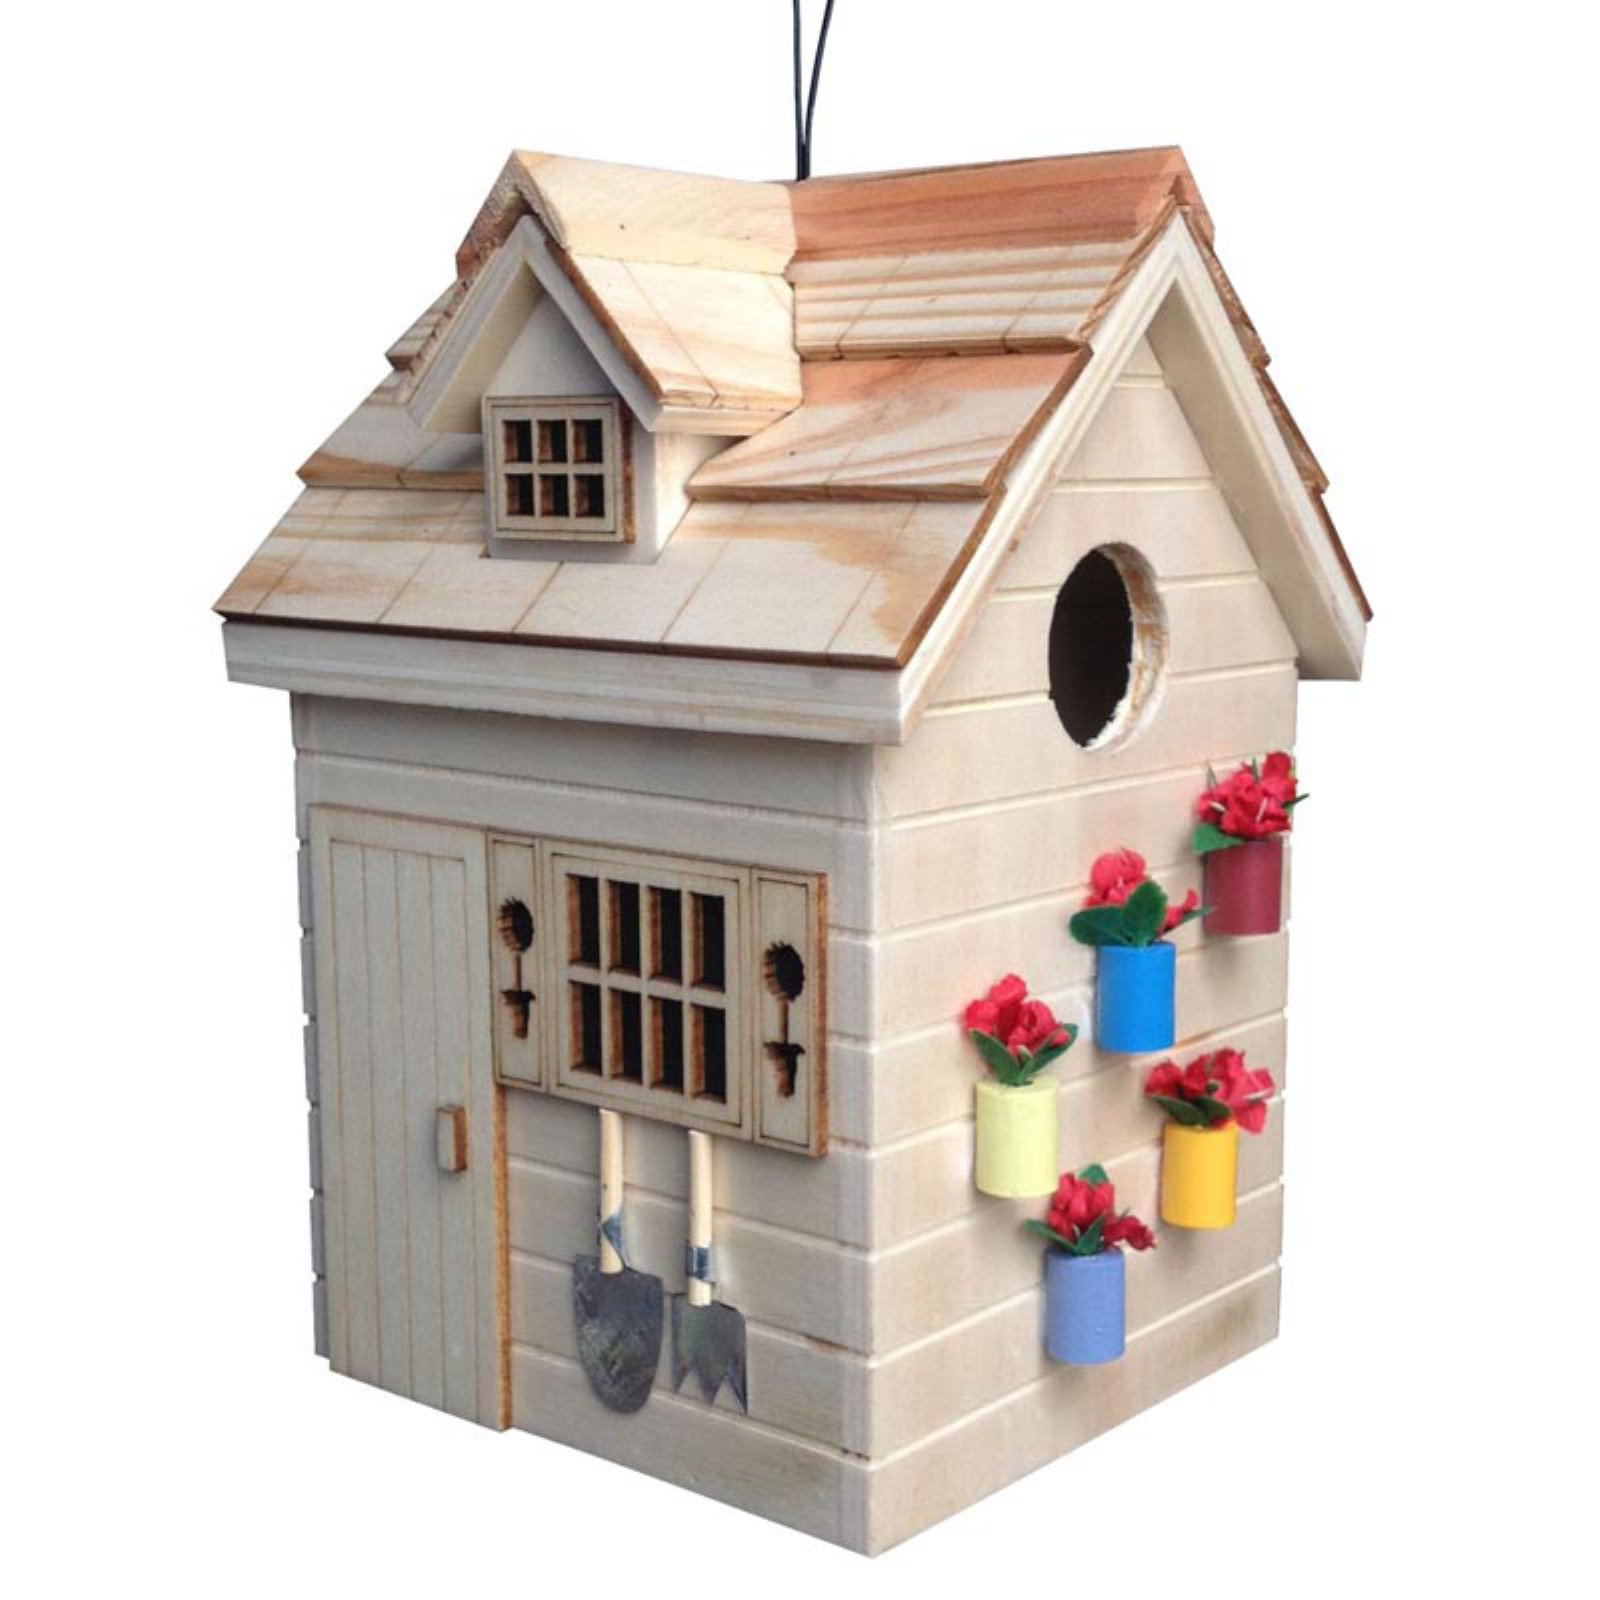 Home Bazaar Potting Shed Birdhouse by Bird Houses